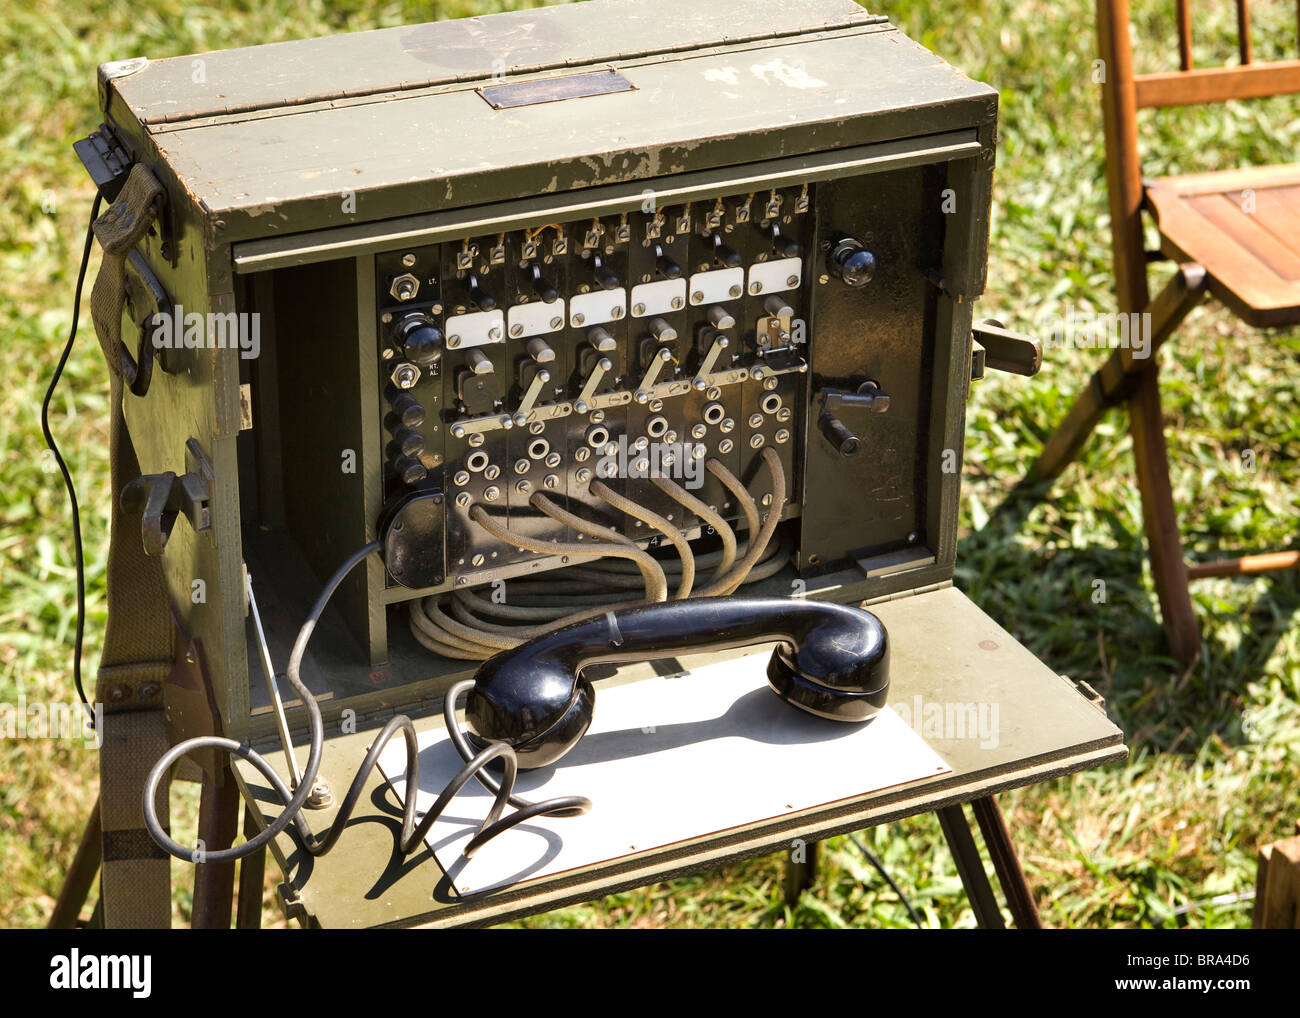 wwii army signal corps bd 71 switchboard stock photo all free downloads vector art all free download vector images